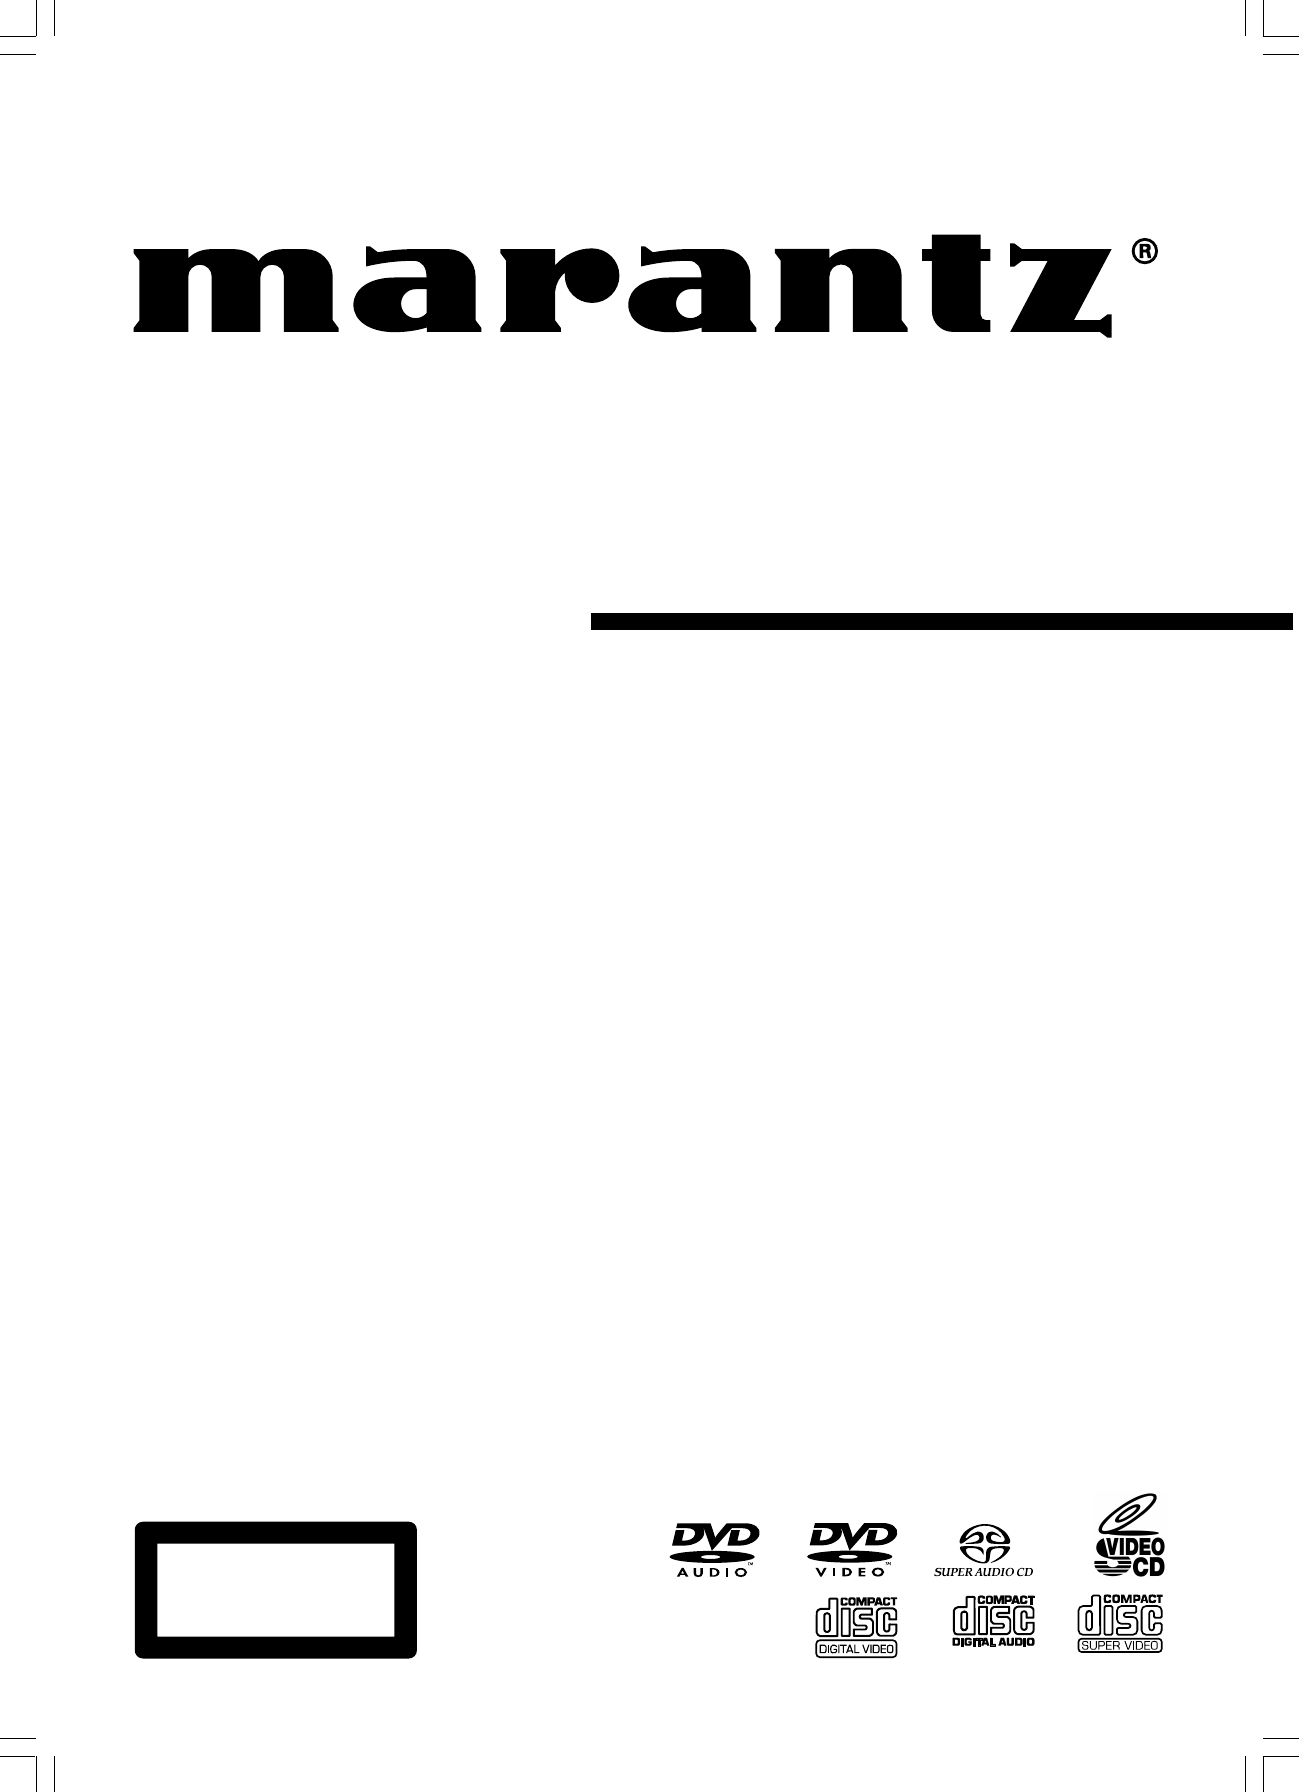 User manual Marantz DV7600 (56 pages)